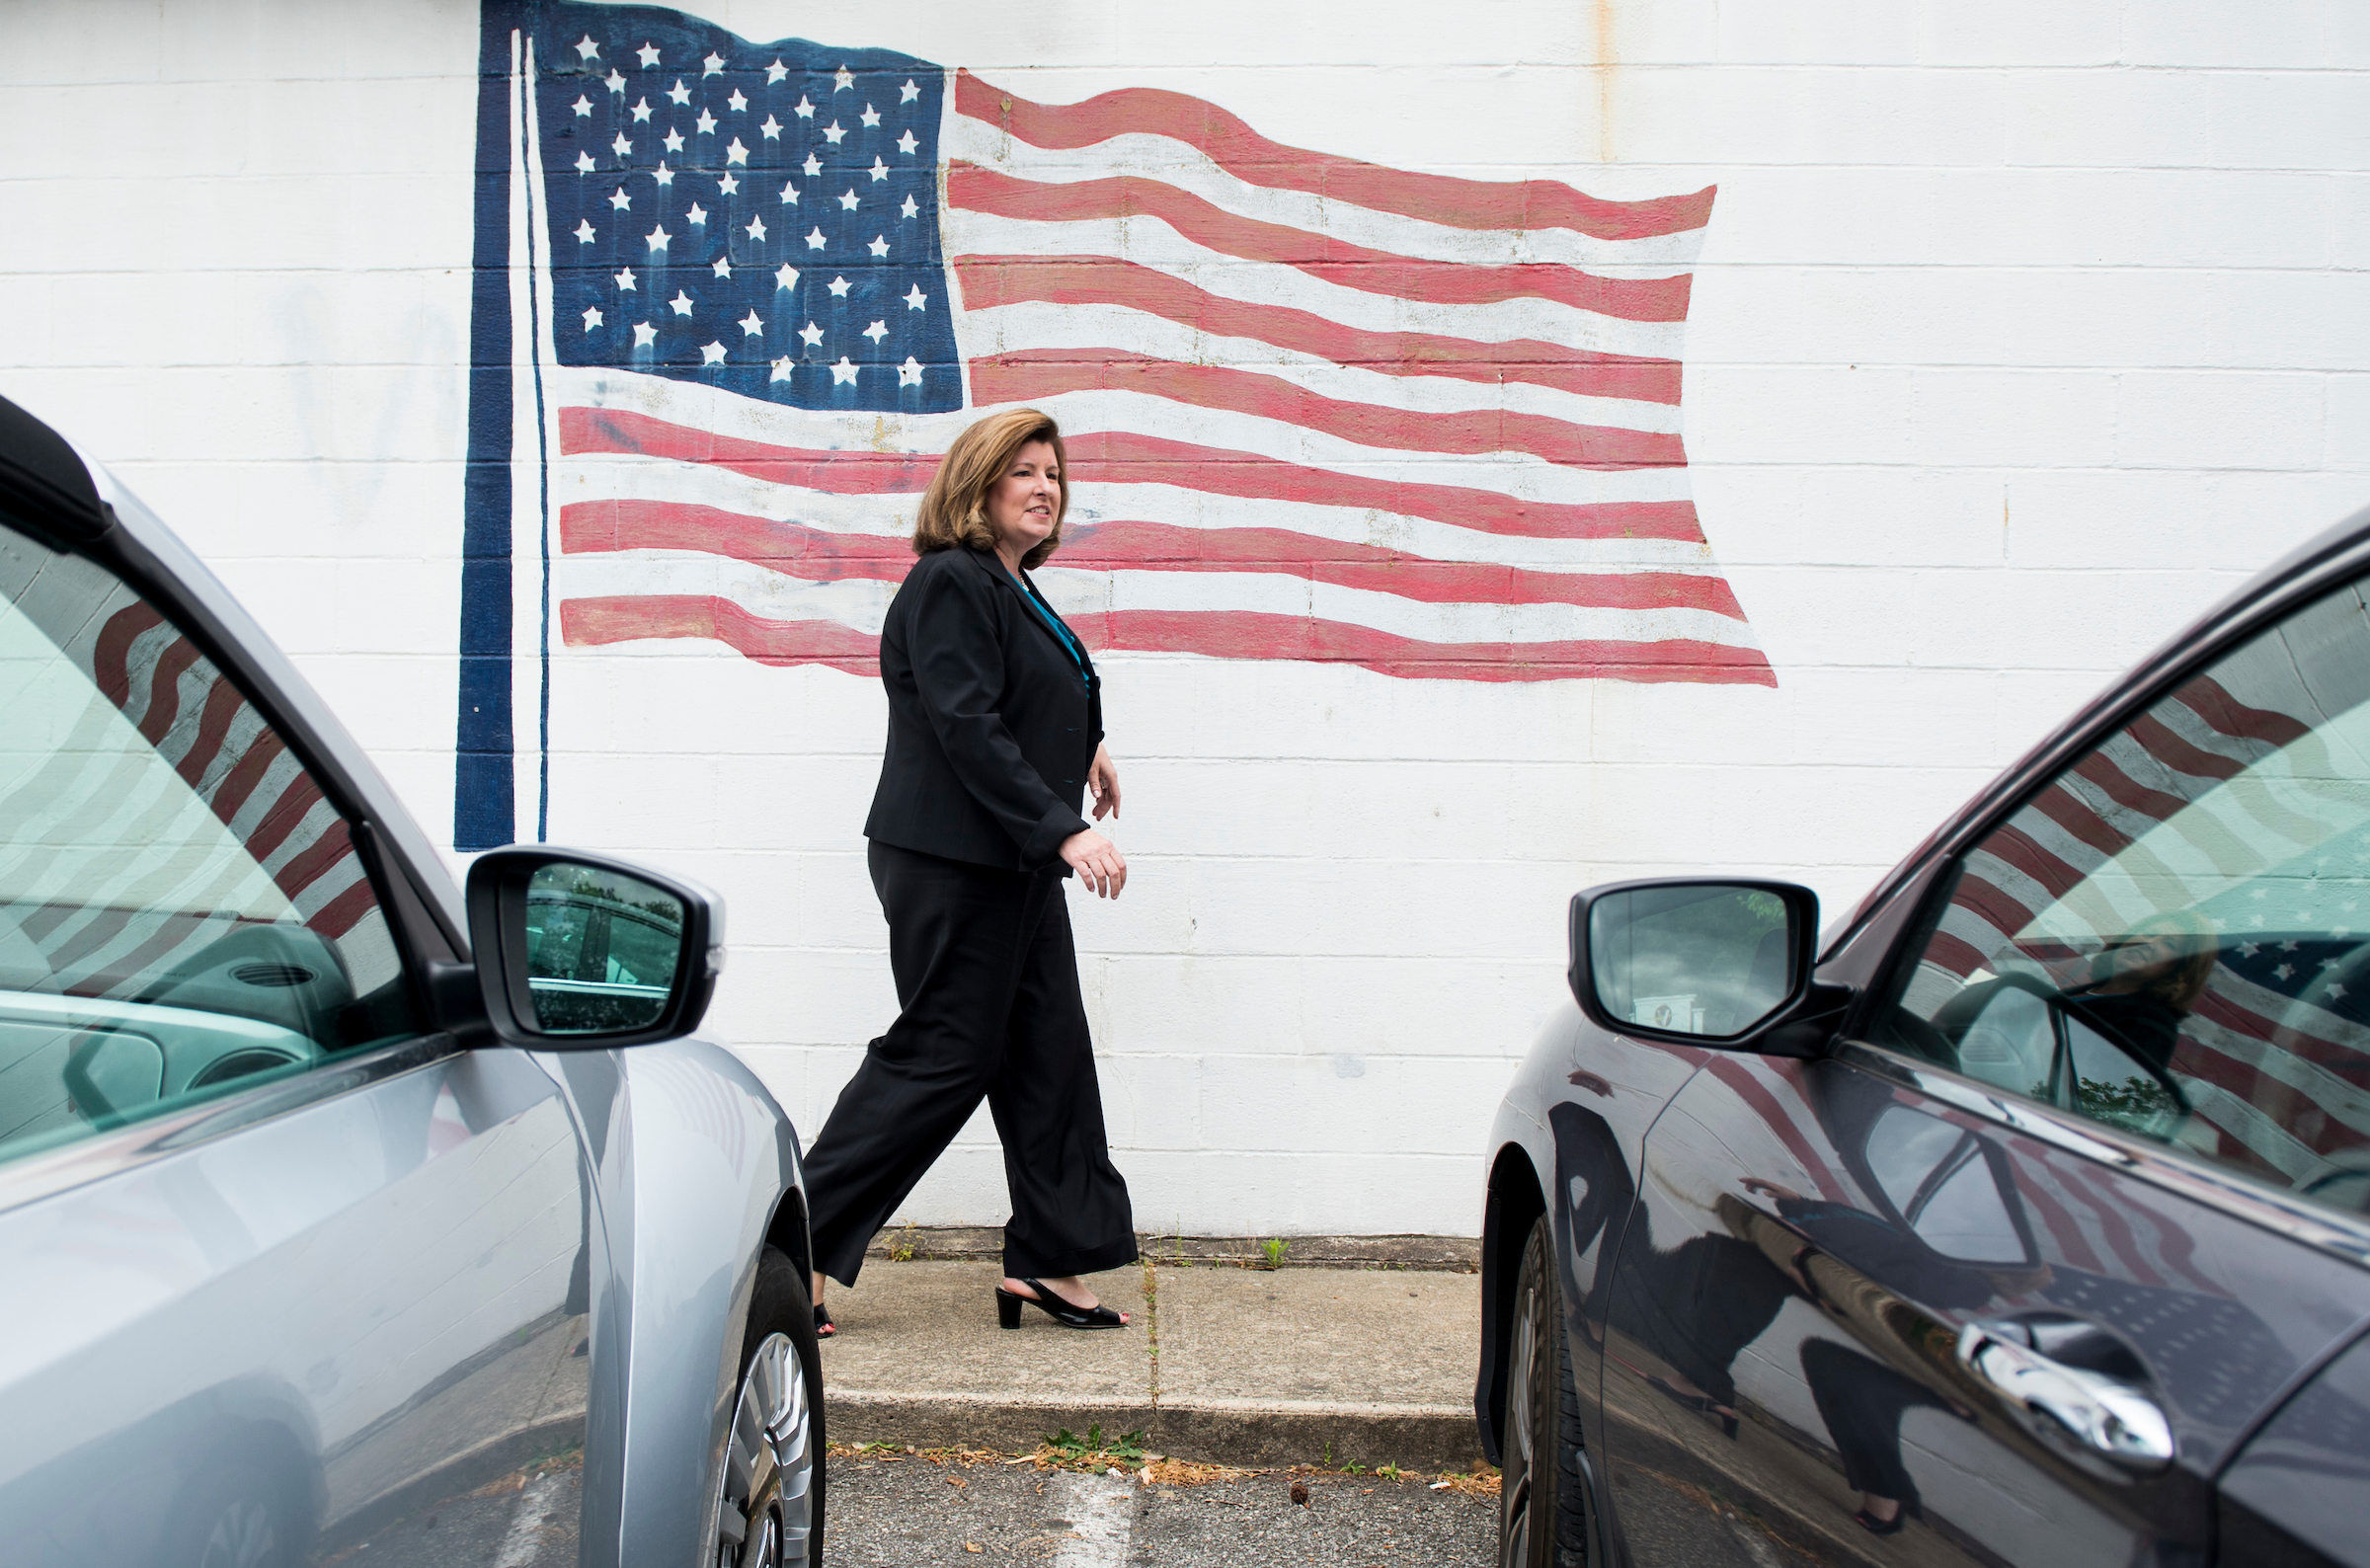 UNITED STATES - APRIL 17: Karen Handel, candidate for the Georgia 6th Congressional district, walks past an American flag as she arrives for a campaign stop at Rhea's restaurant in Roswell, Ga., on Monday, April 17, 2017, one day before the special election to fill Tom Price's seat . (Photo By Bill Clark/CQ Roll Call)